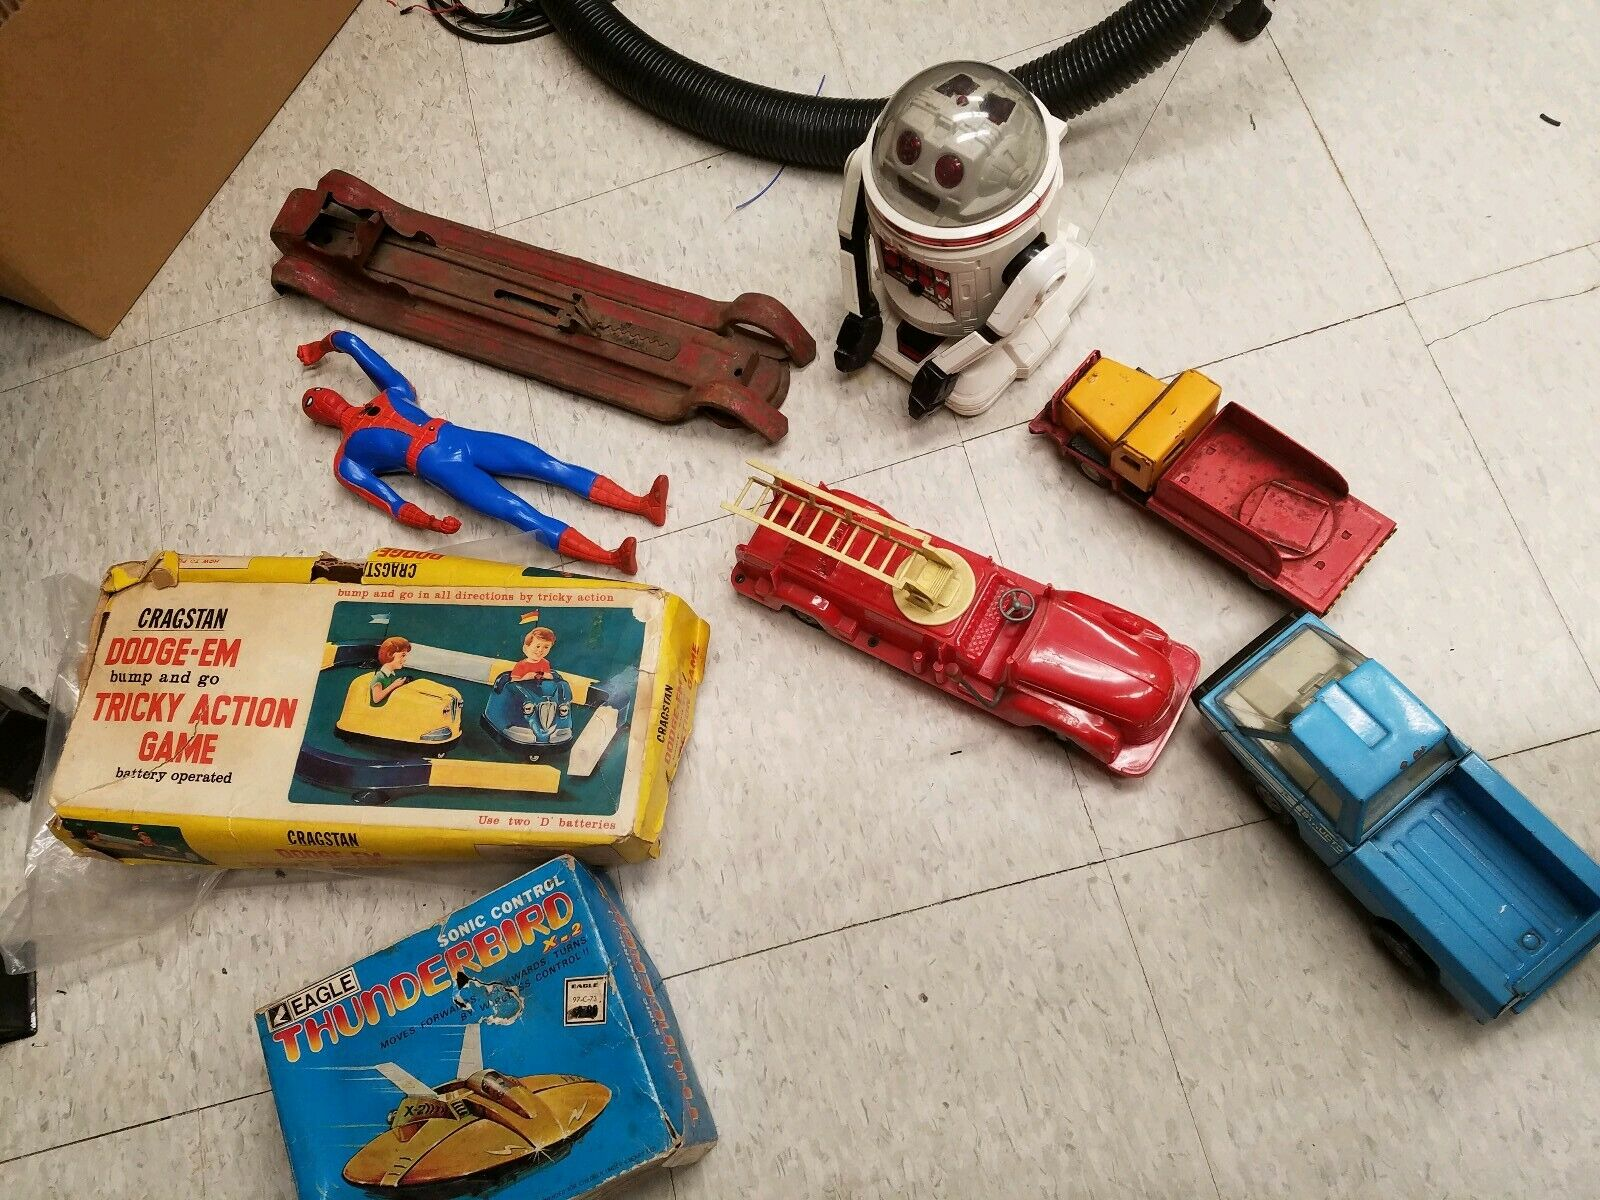 Tin Toy Antique Toy Lot Cragstan Marx Spider Man Vintage Toy Lot tin toy lot